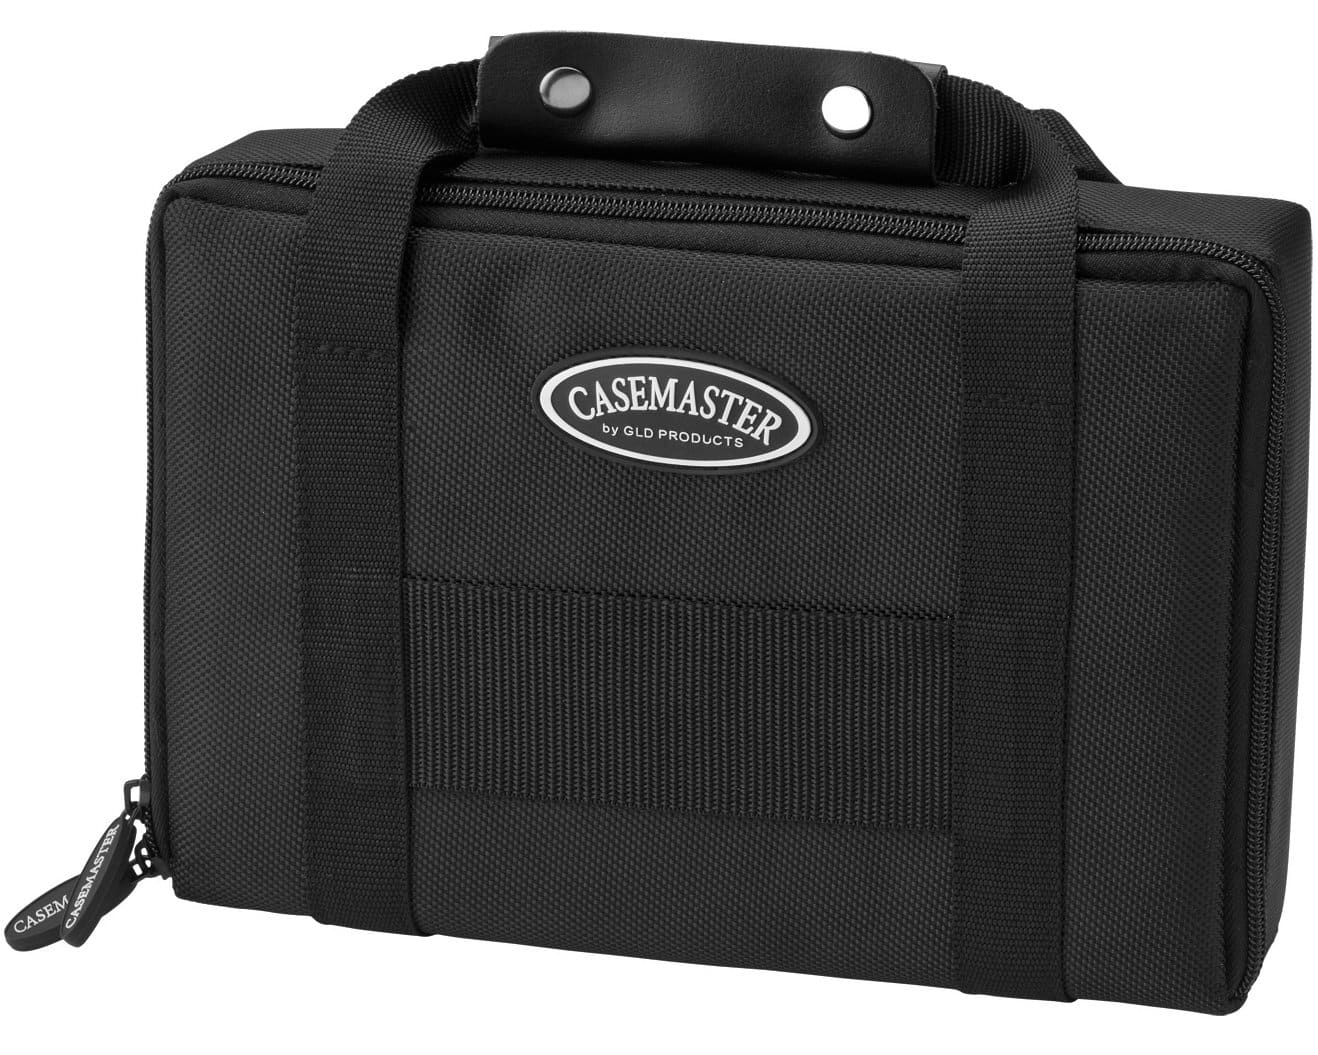 Casemaster Classic Nylon Dart Carrying Case for Steel and Soft Tip Darts, Holds 6 Darts Numerous Other Accessories via Generous Storage Pockets, Tubes and Boxes $25